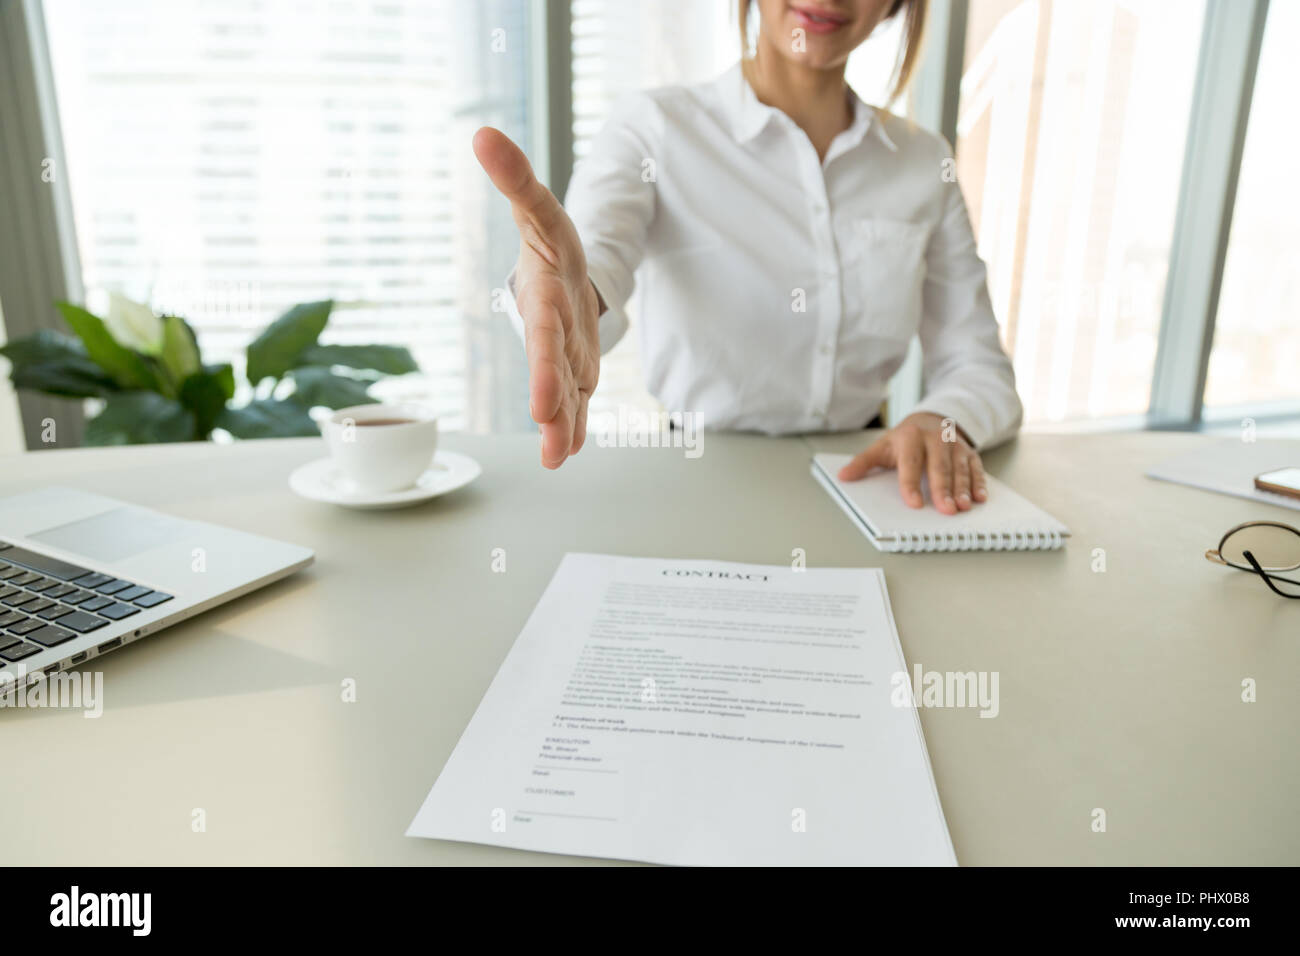 Businesswoman employeur extension hand for handshake offrant des sig Photo Stock